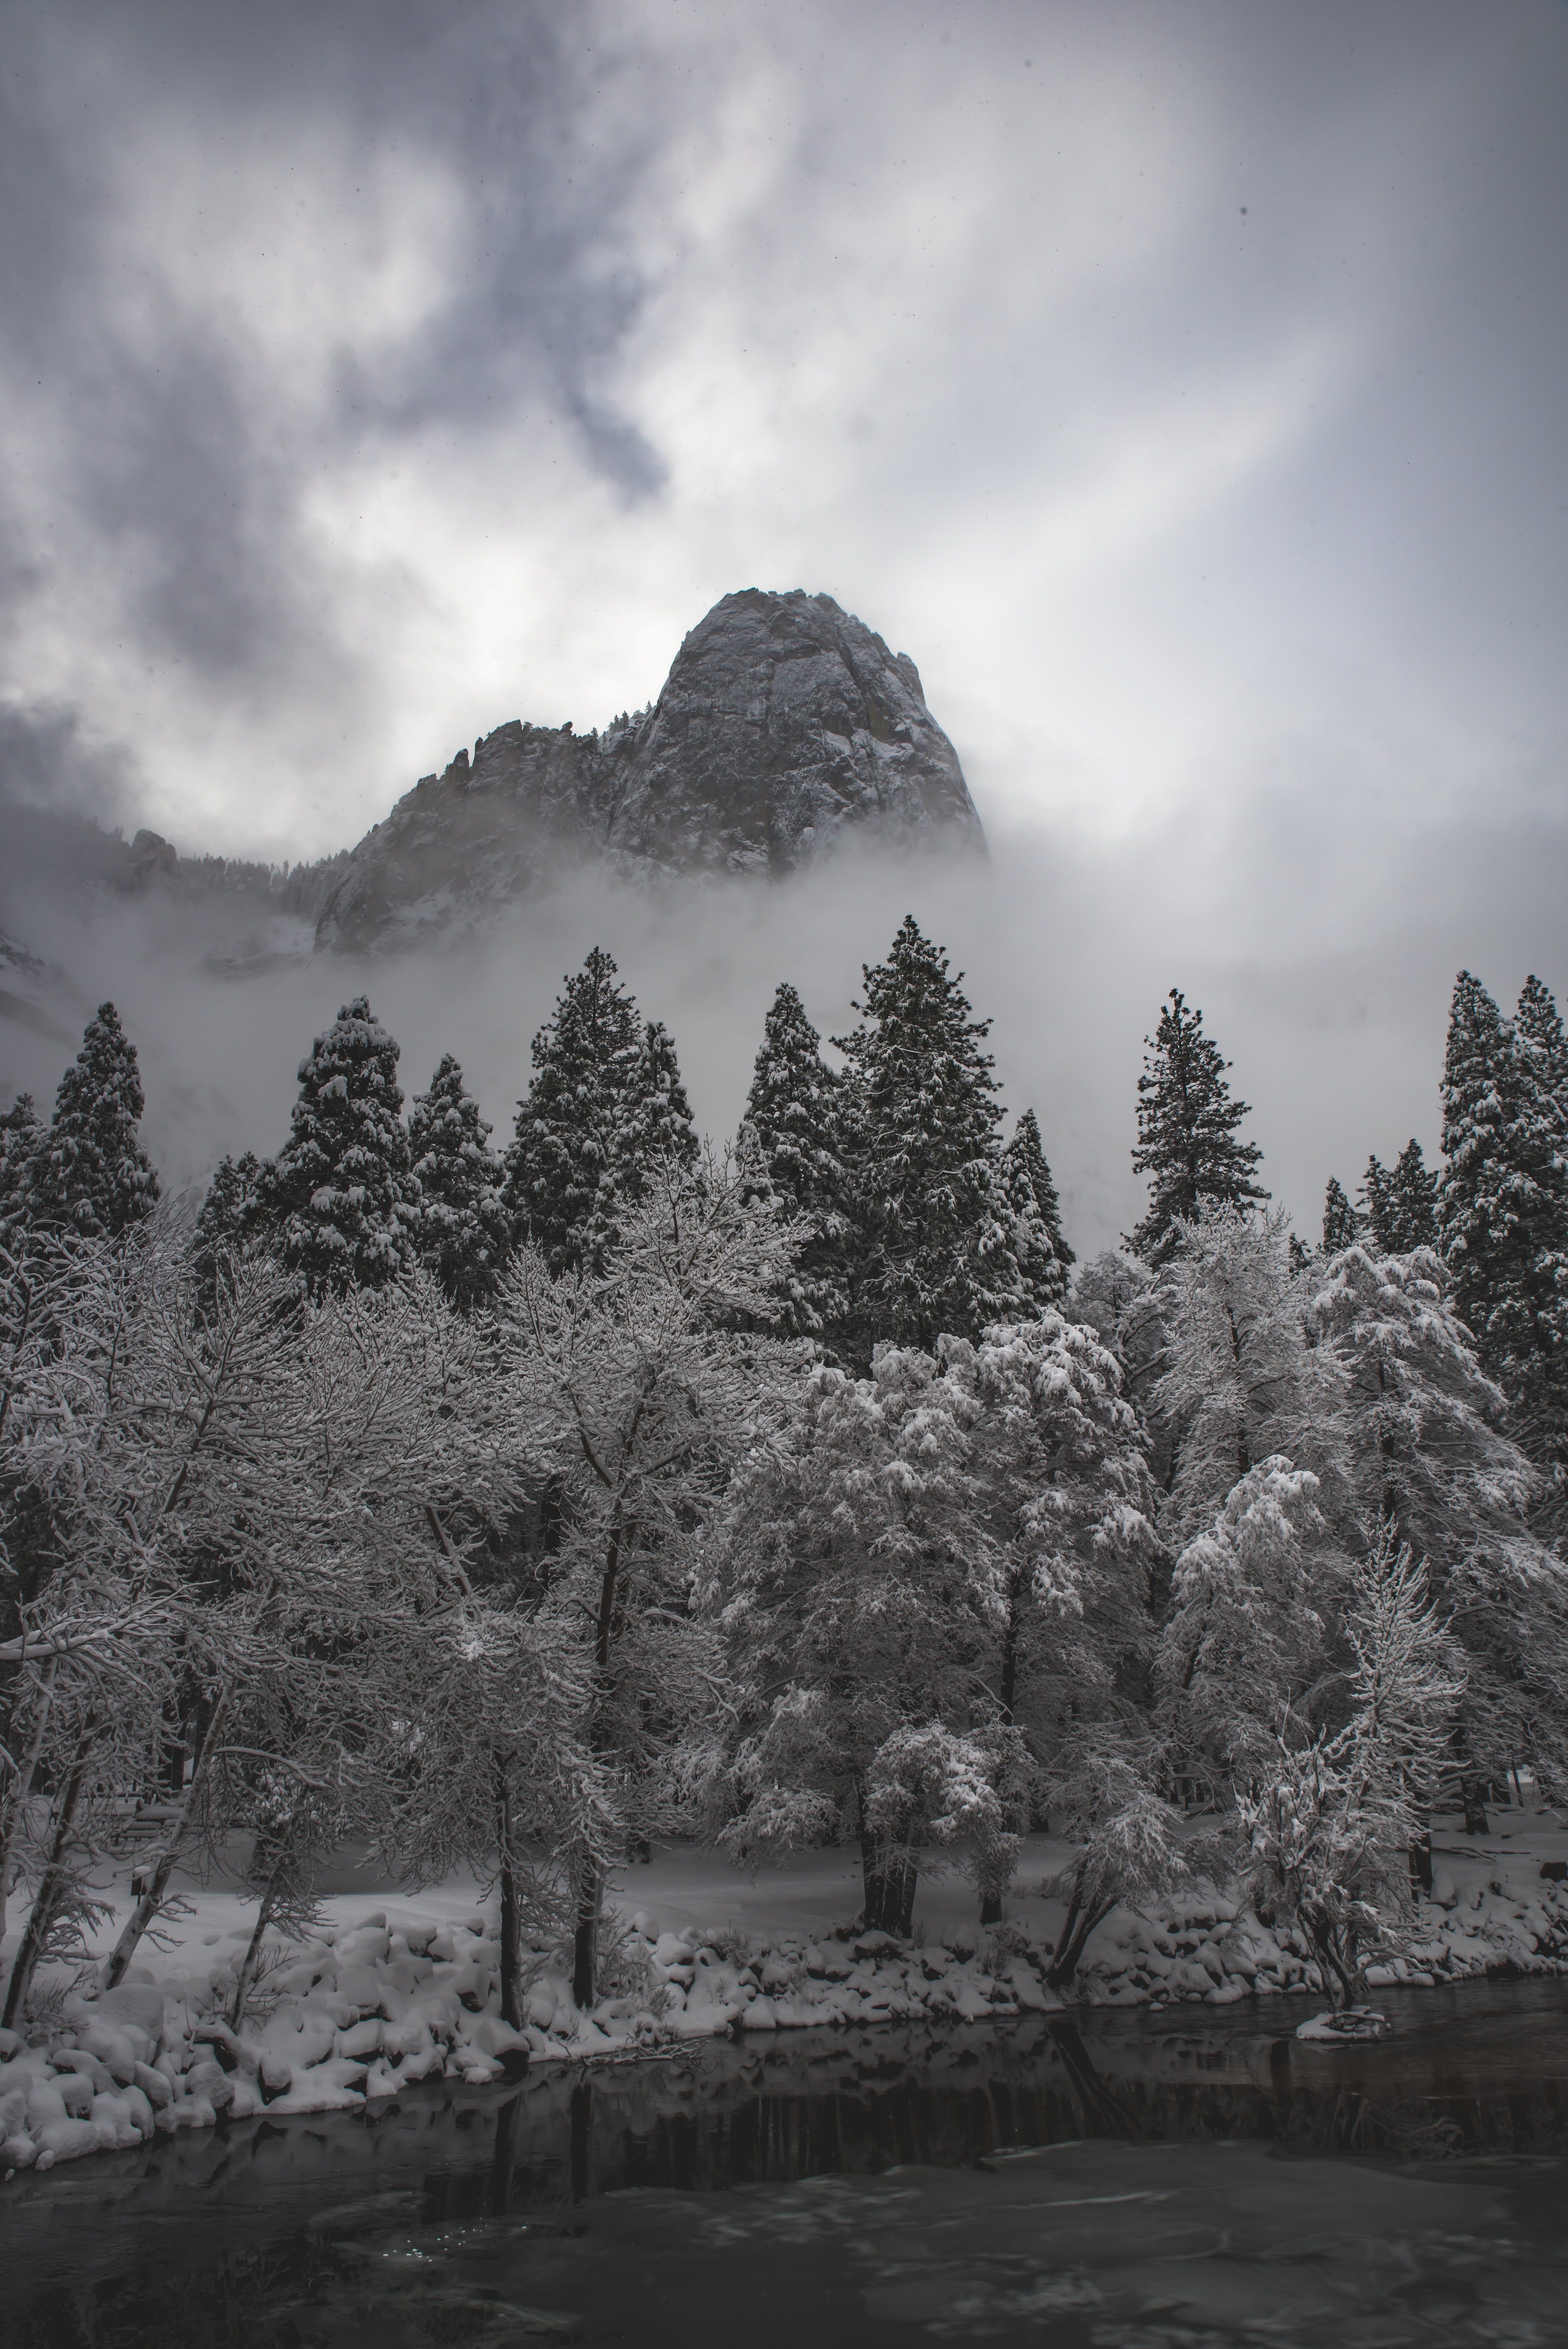 grayscale photography of trees and mountain